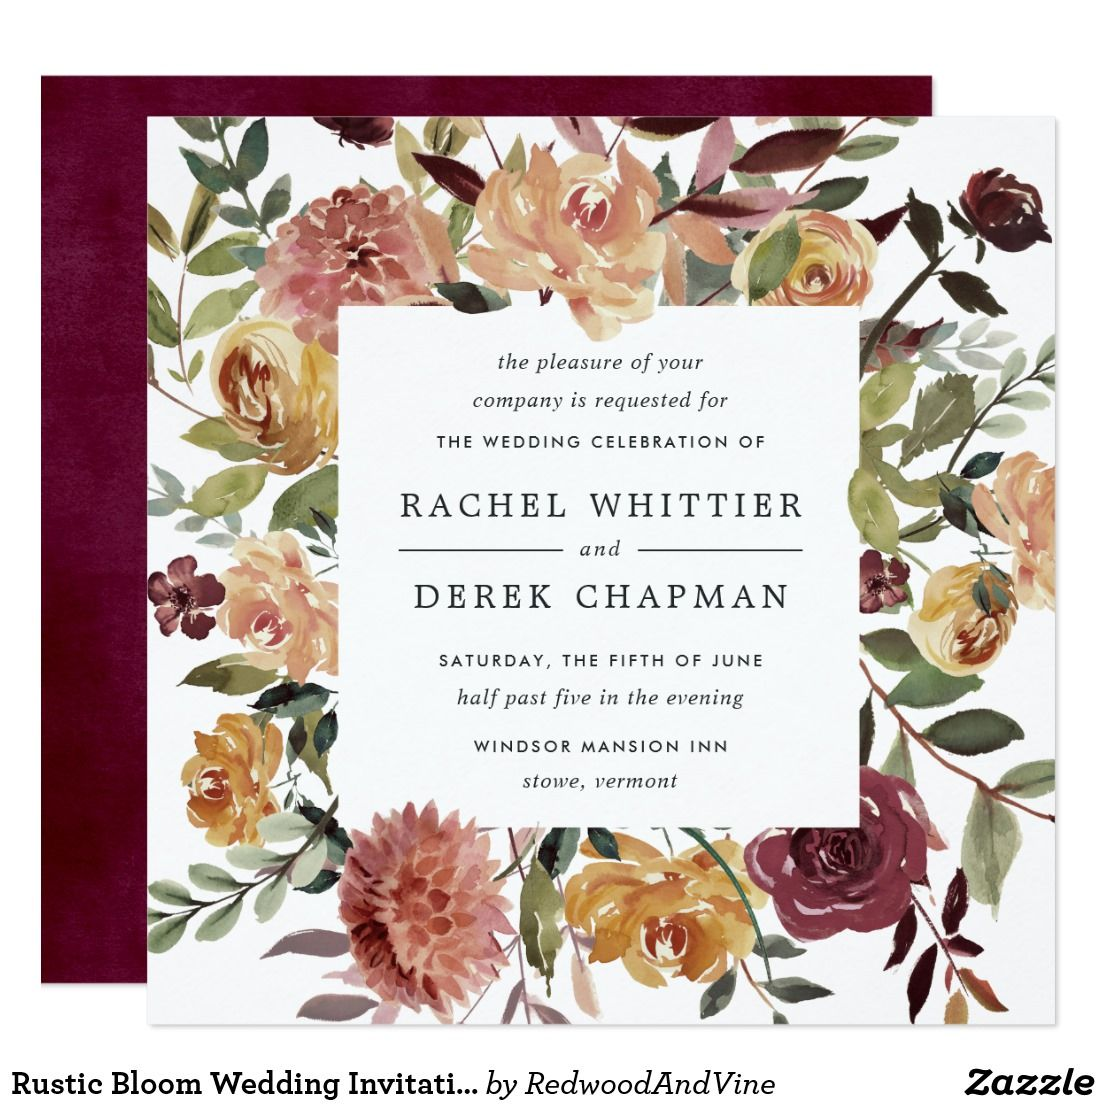 Rustic Bloom Wedding Invitation Square Botanical Wedding